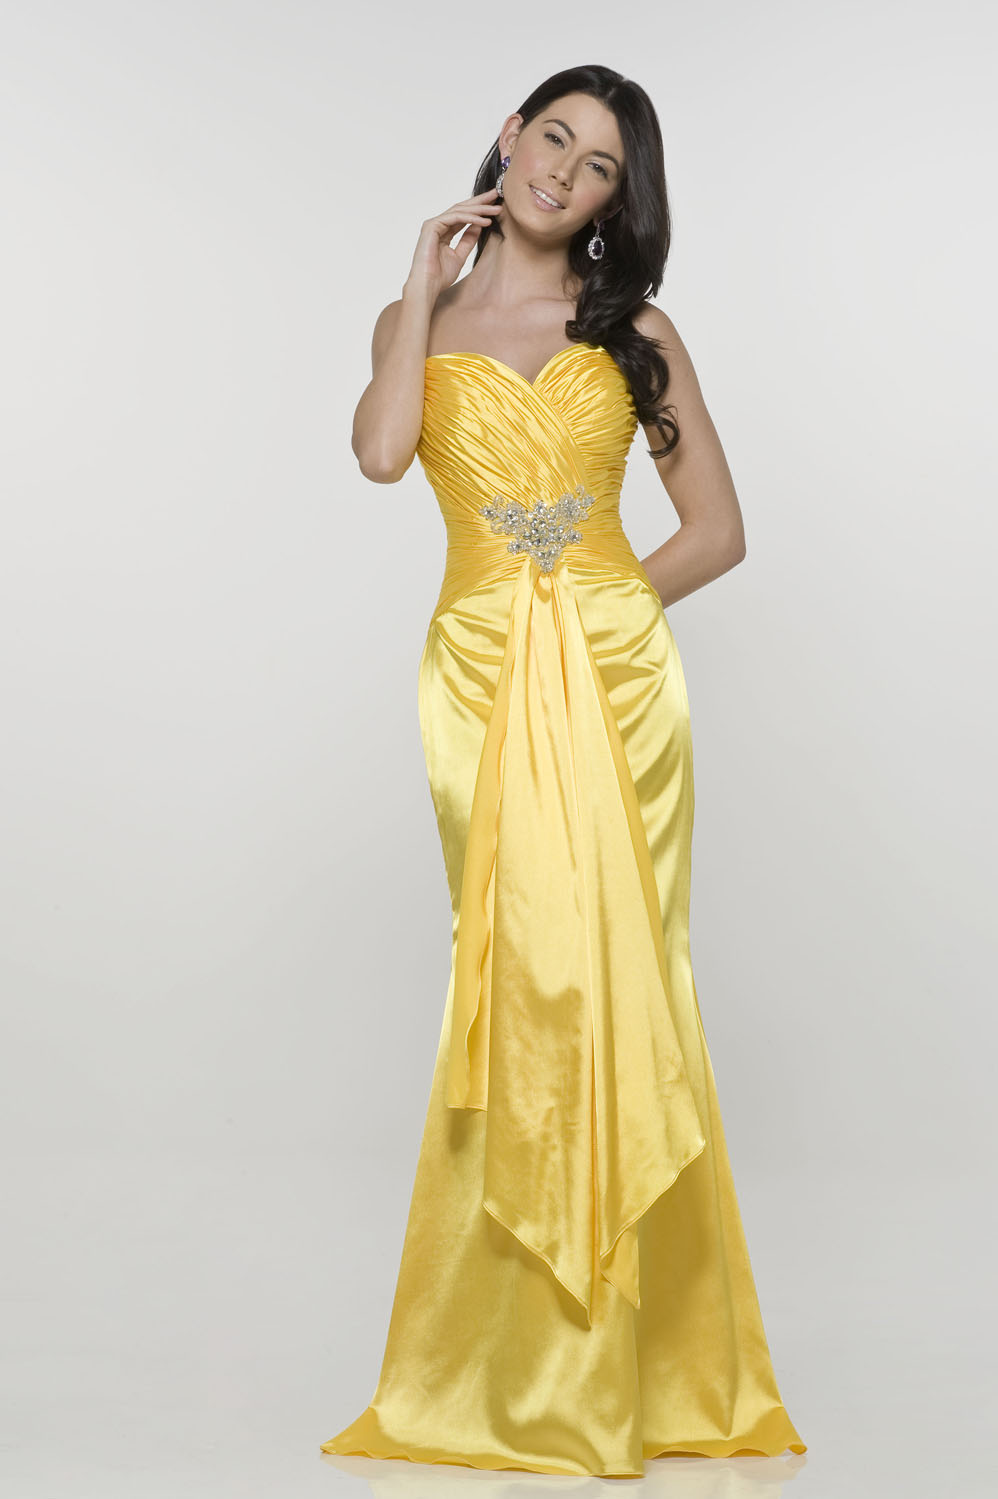 yellow mermaid wedding dressescherry marry cherry marry ForYellow Dresses For Weddings